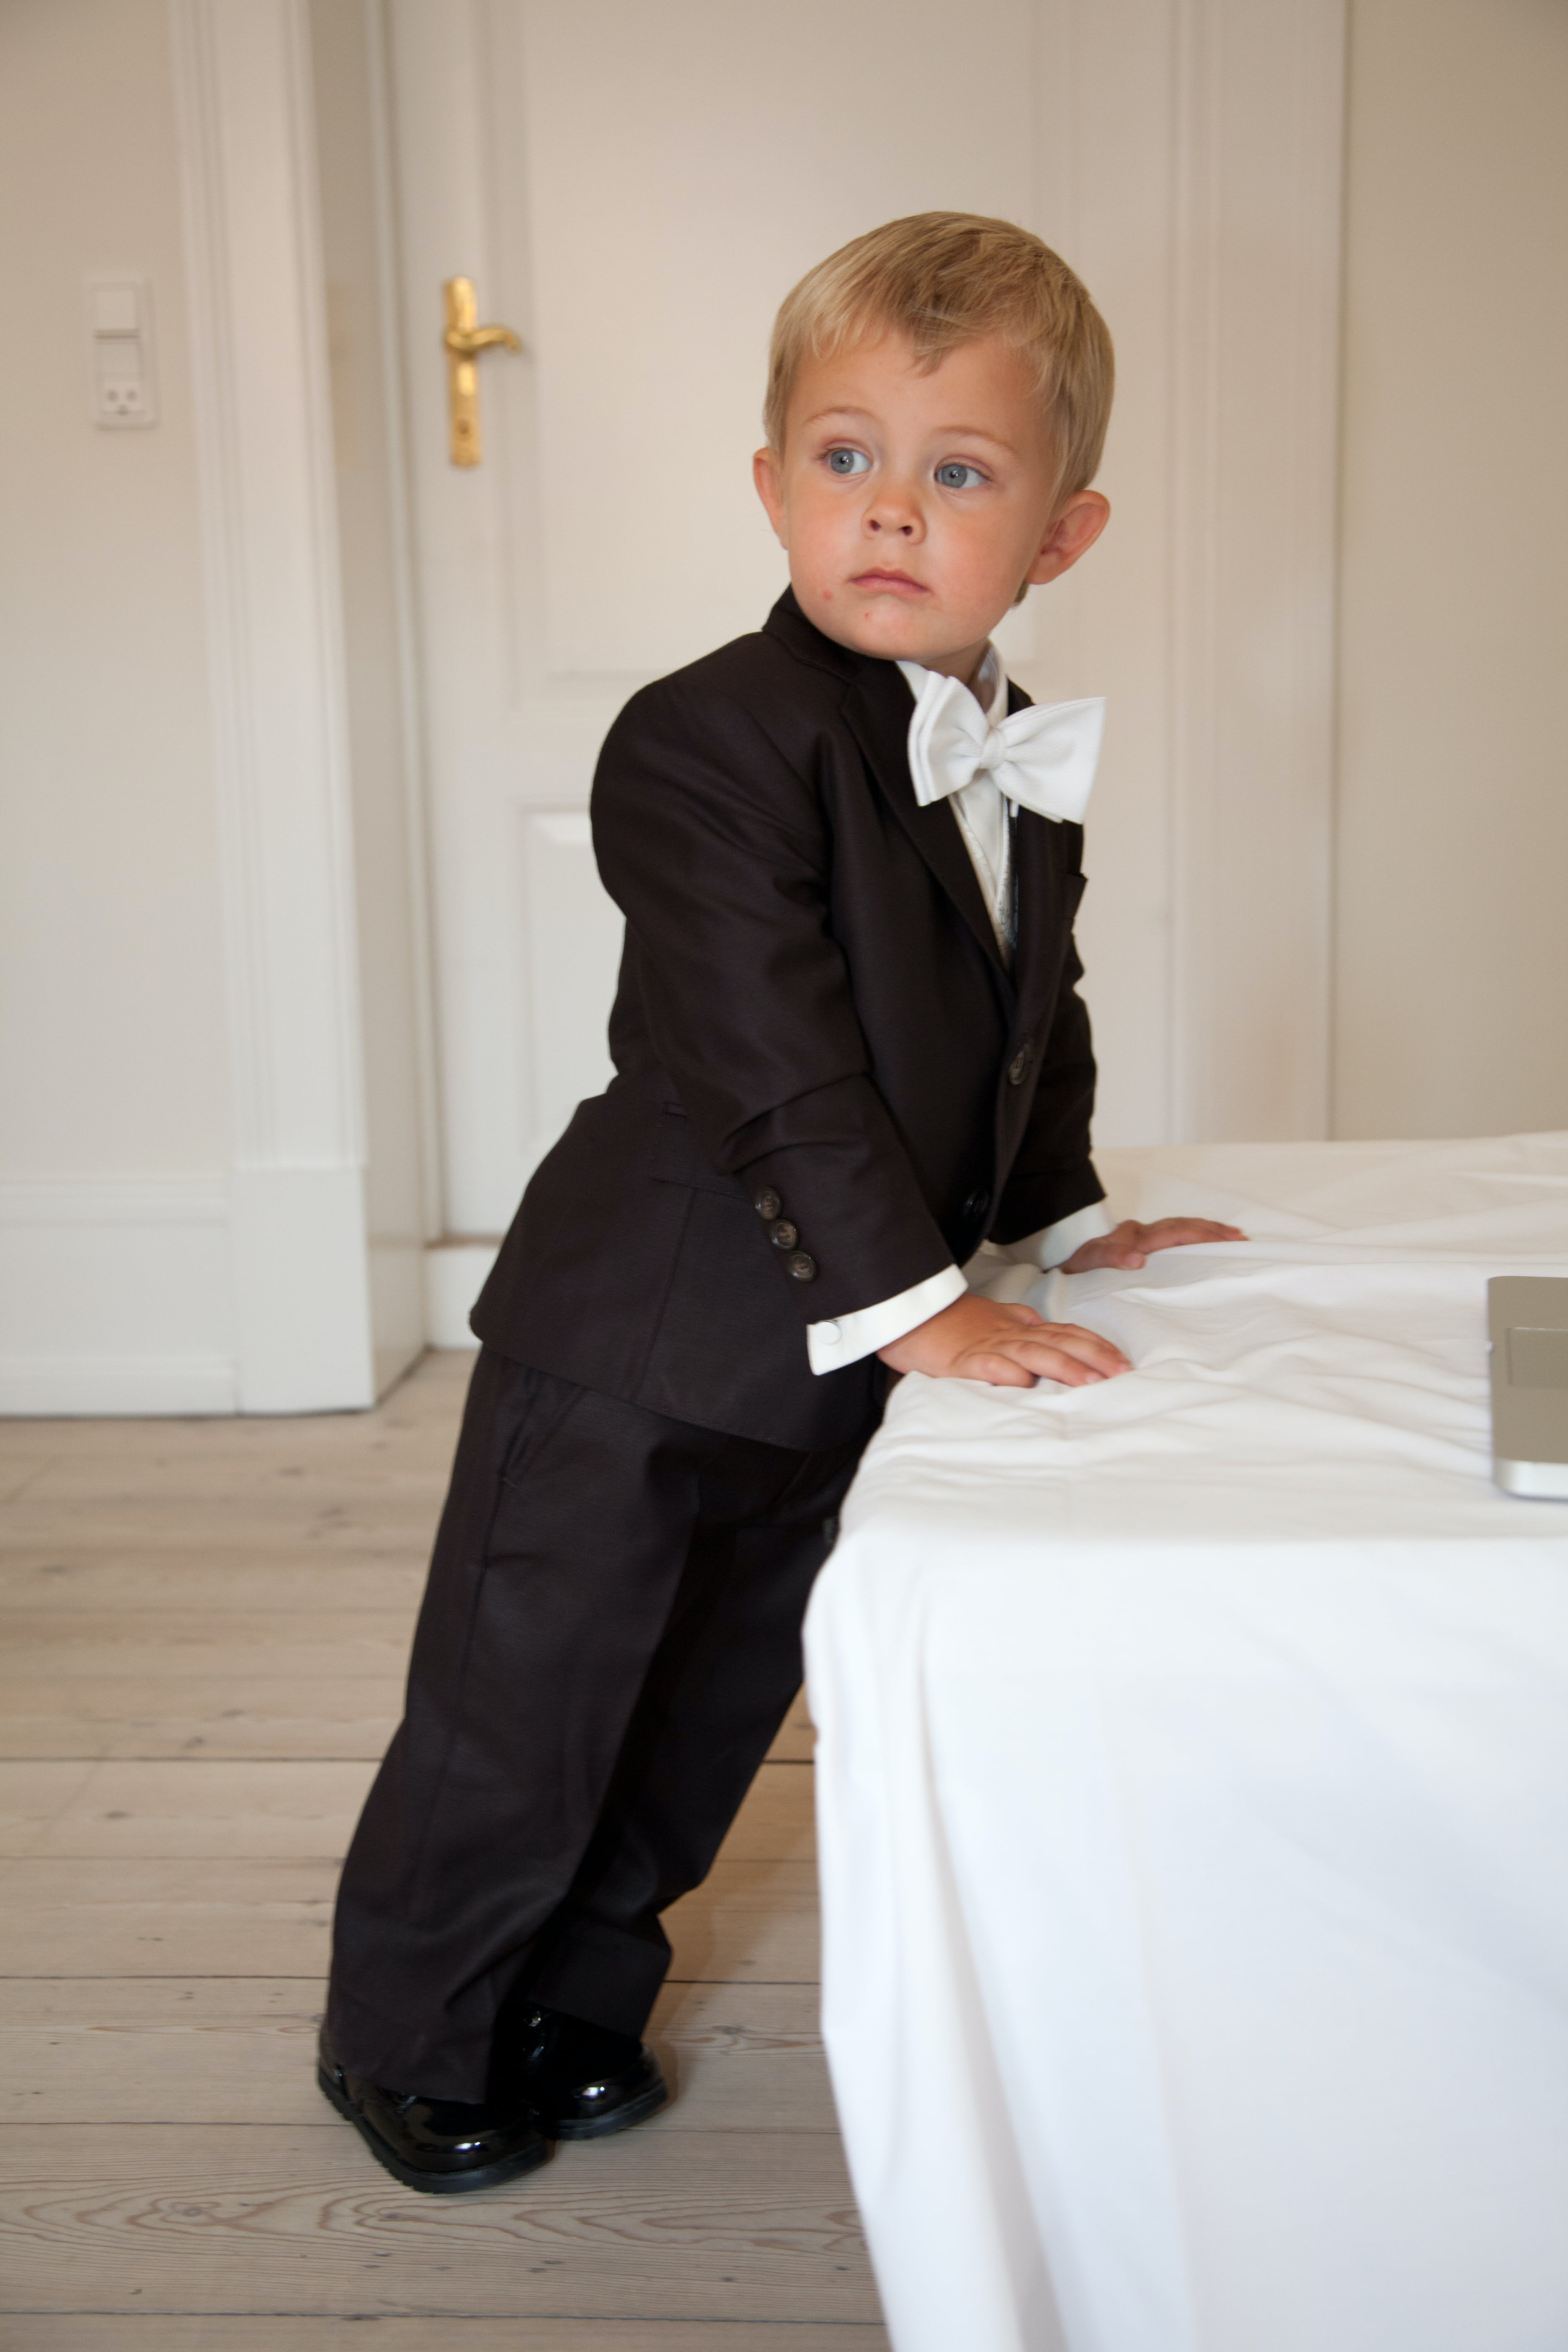 Boy Leaning on White Cloth